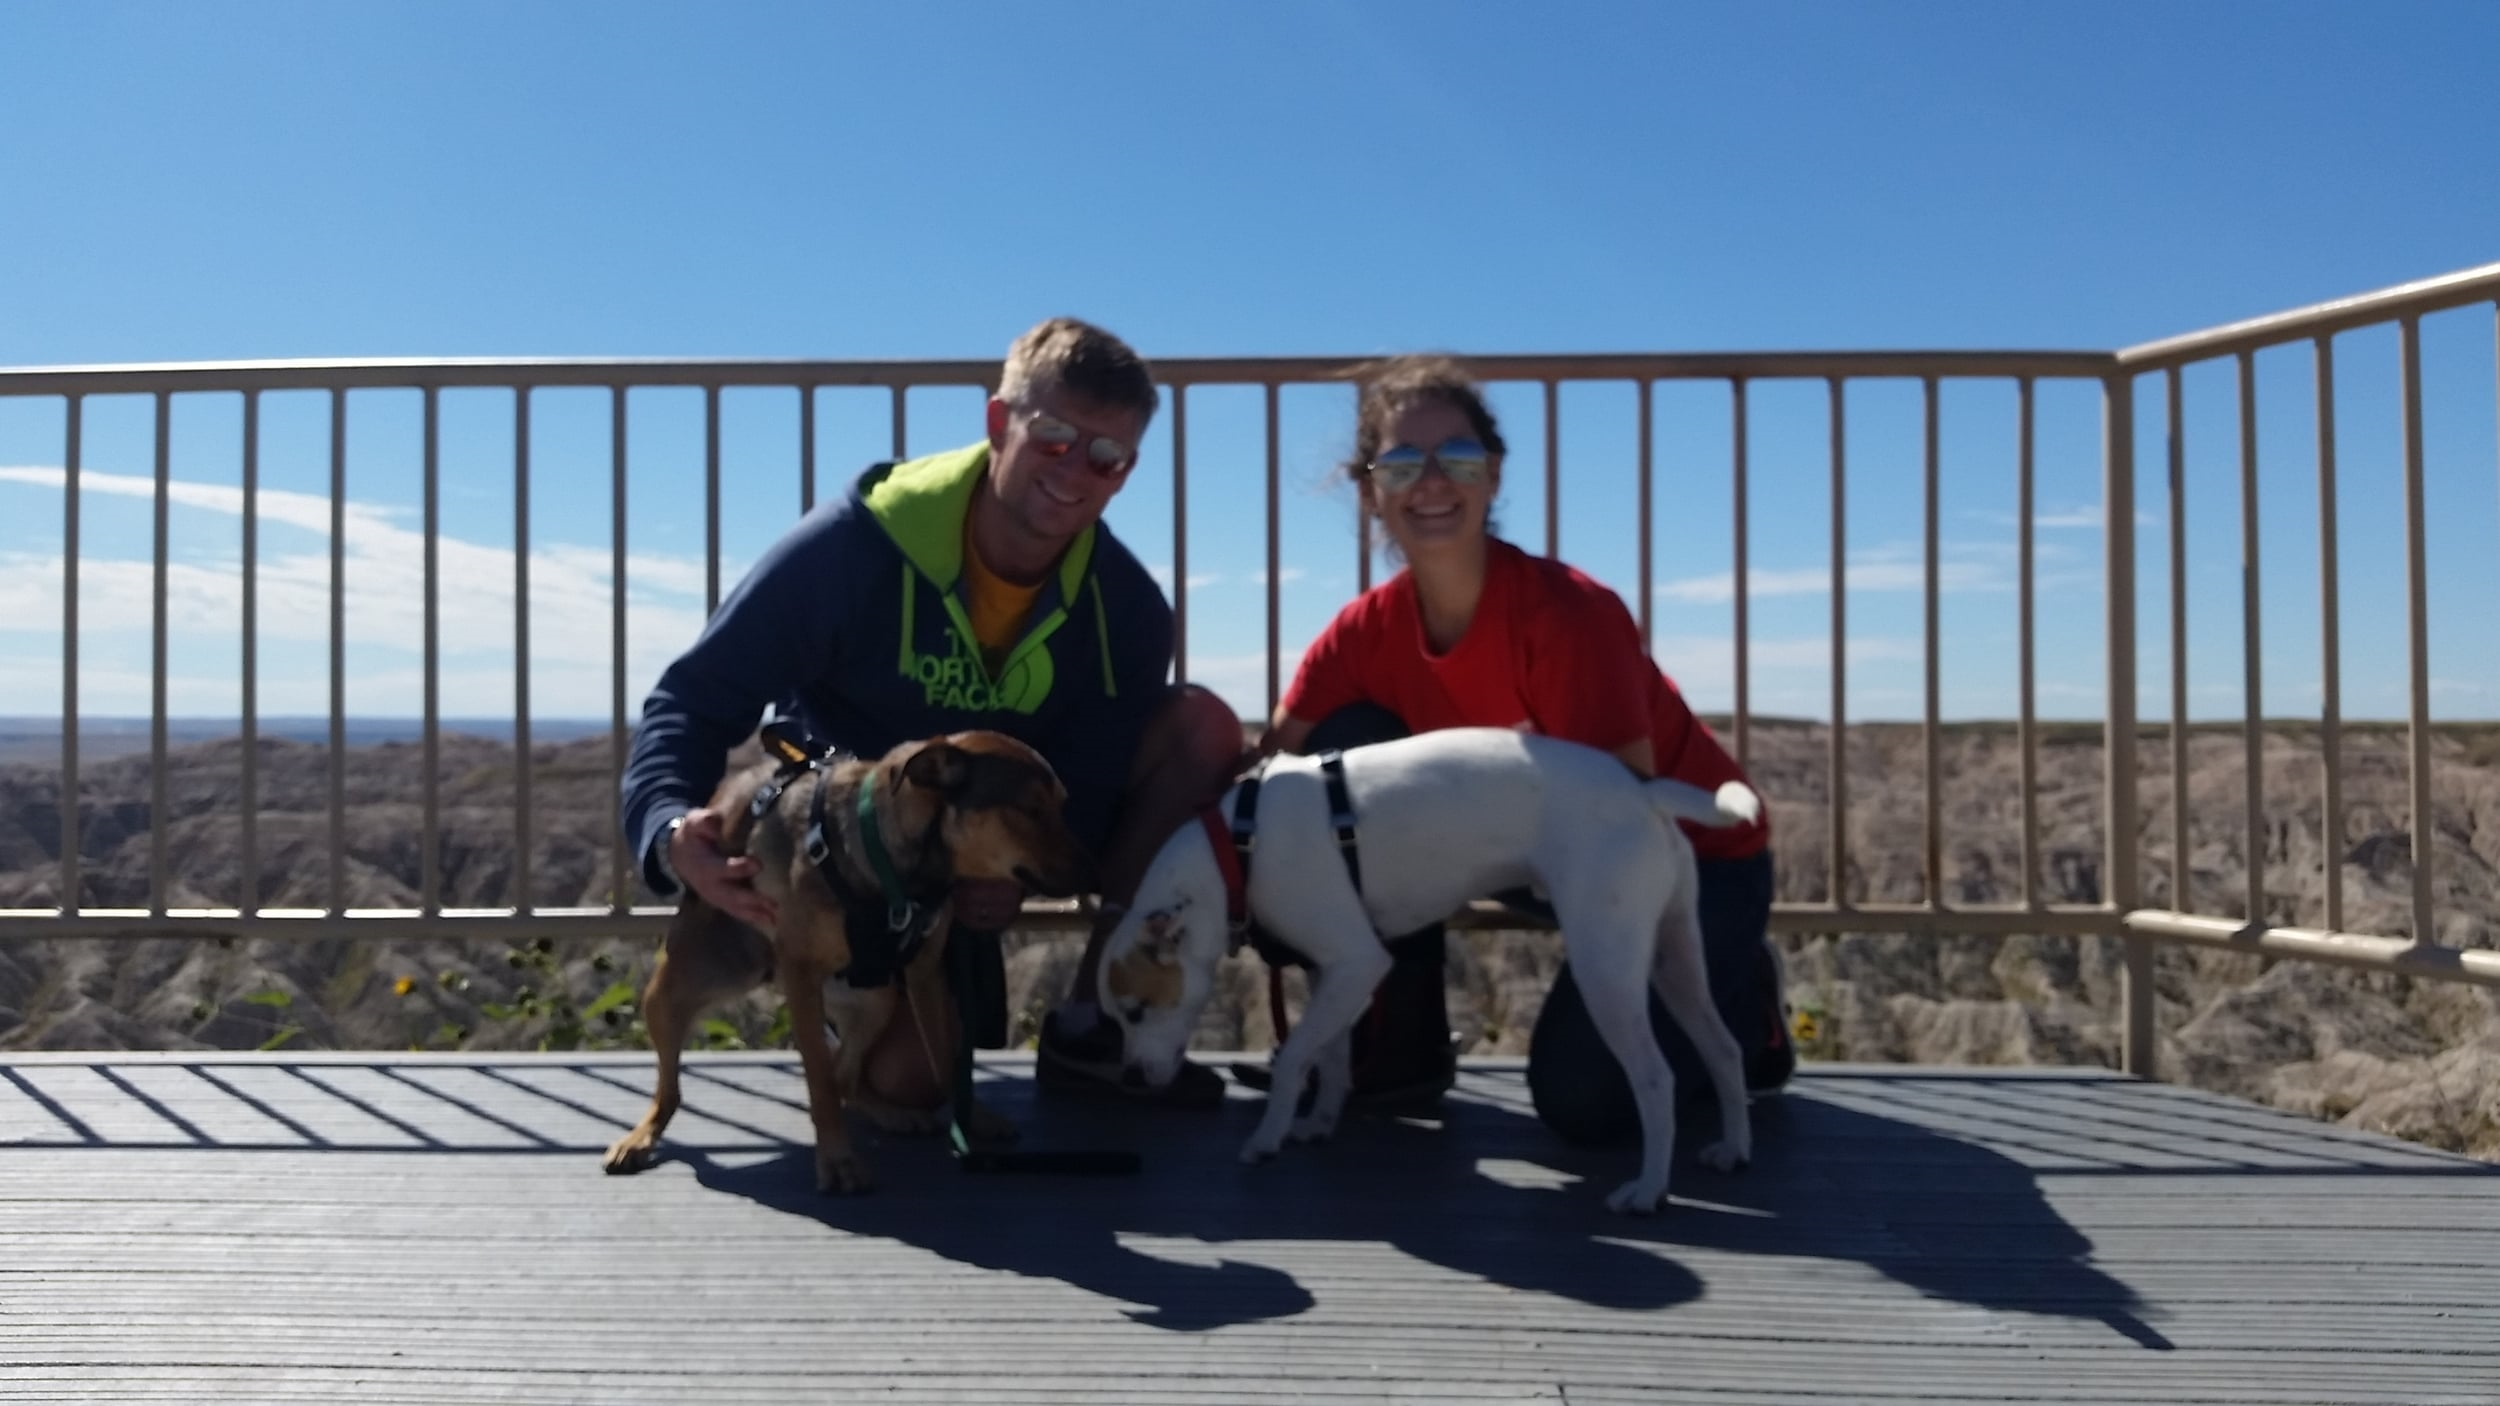 Visiting the Badlands. The dogs are looking just thrilled!